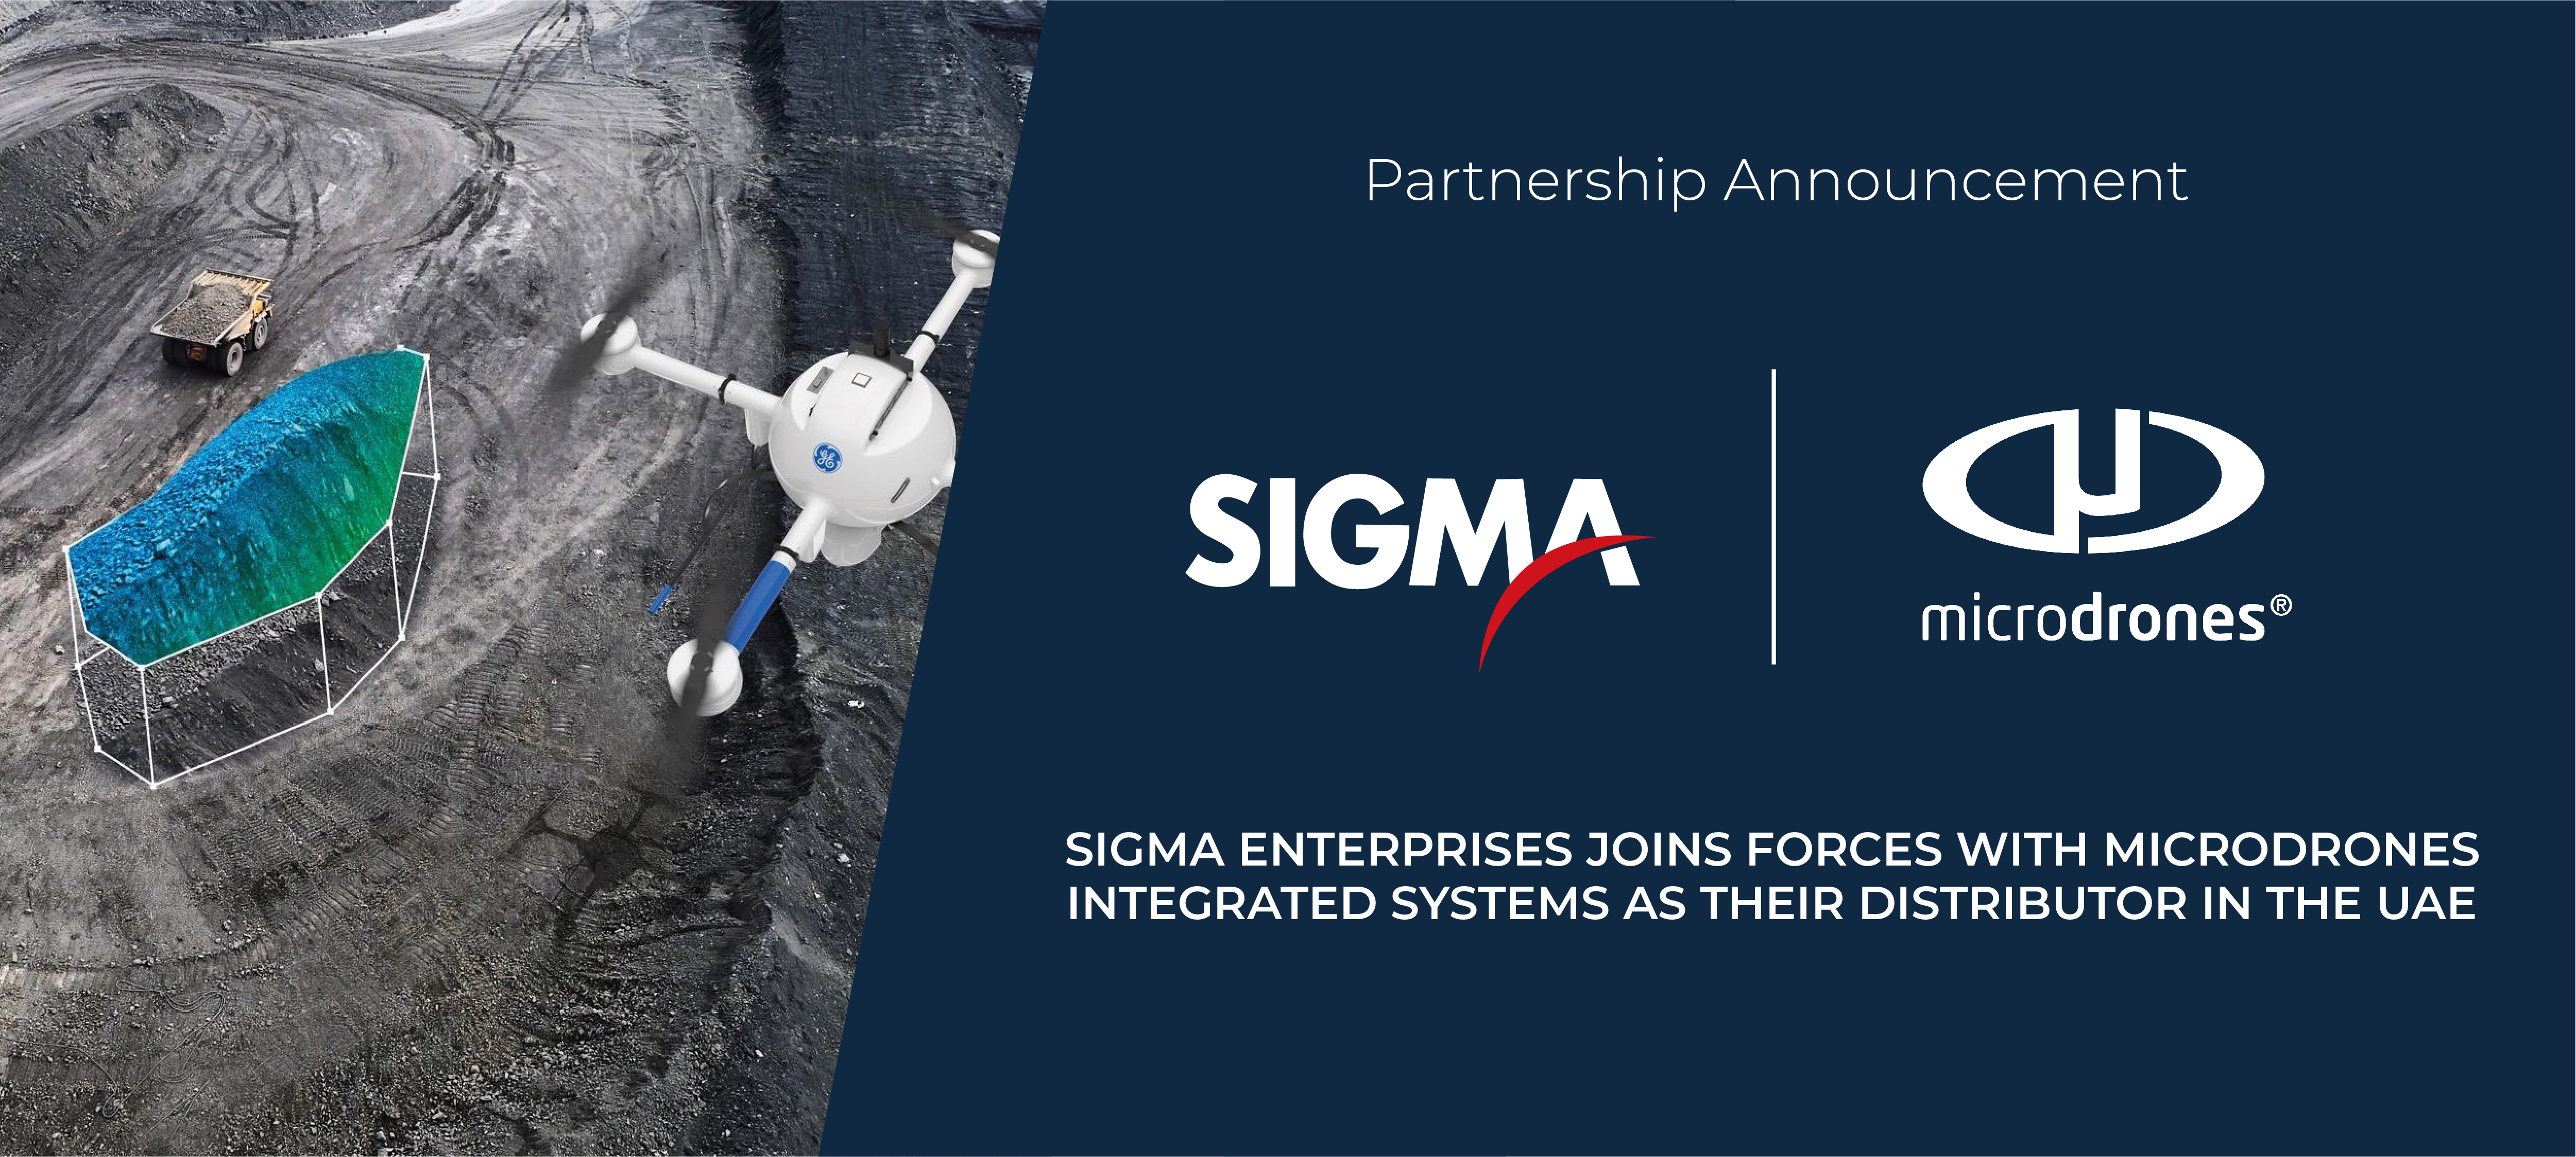 SIGMA ENTERPRISES JOINS FORCES WITH MICRODRONES INTEGRATED SYSTEMS ASTHEIR DISTRIBUTOR IN THE UAE